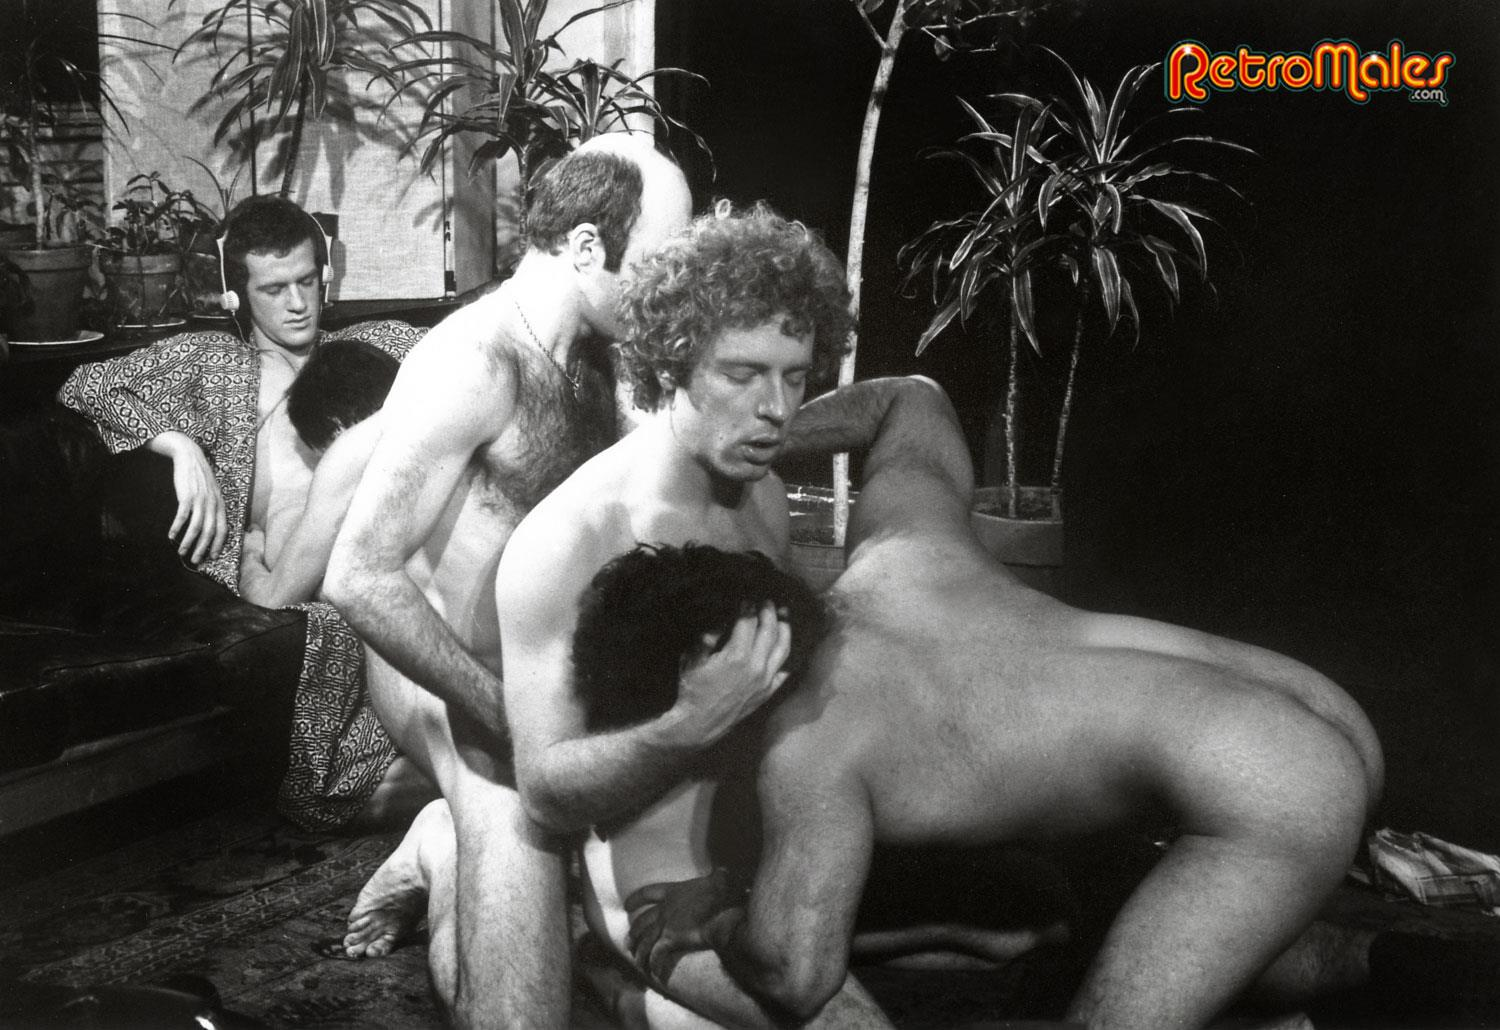 Retro-Males-Ballet-Down-the-Highway-Vintage-Gay-Bareback-Porn-10 Vintage Gay Porn: Ballet Down the Highway